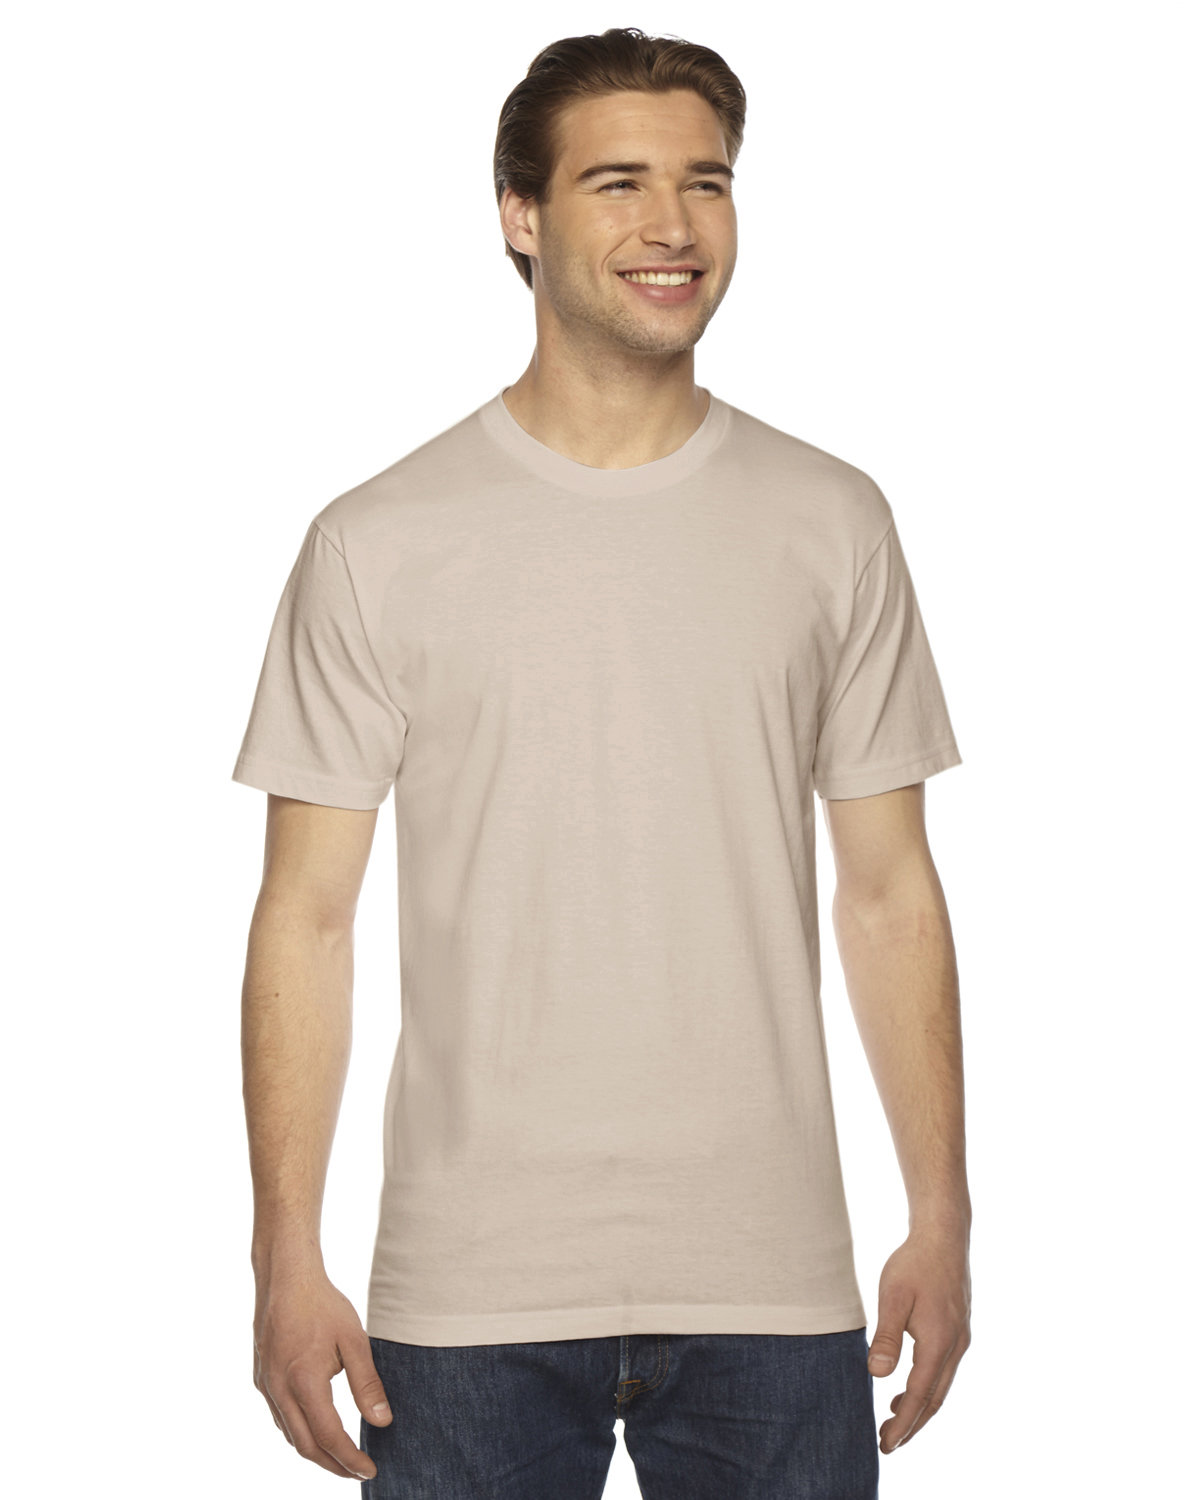 American Apparel Unisex Fine Jersey USA Made T-Shirt CREME